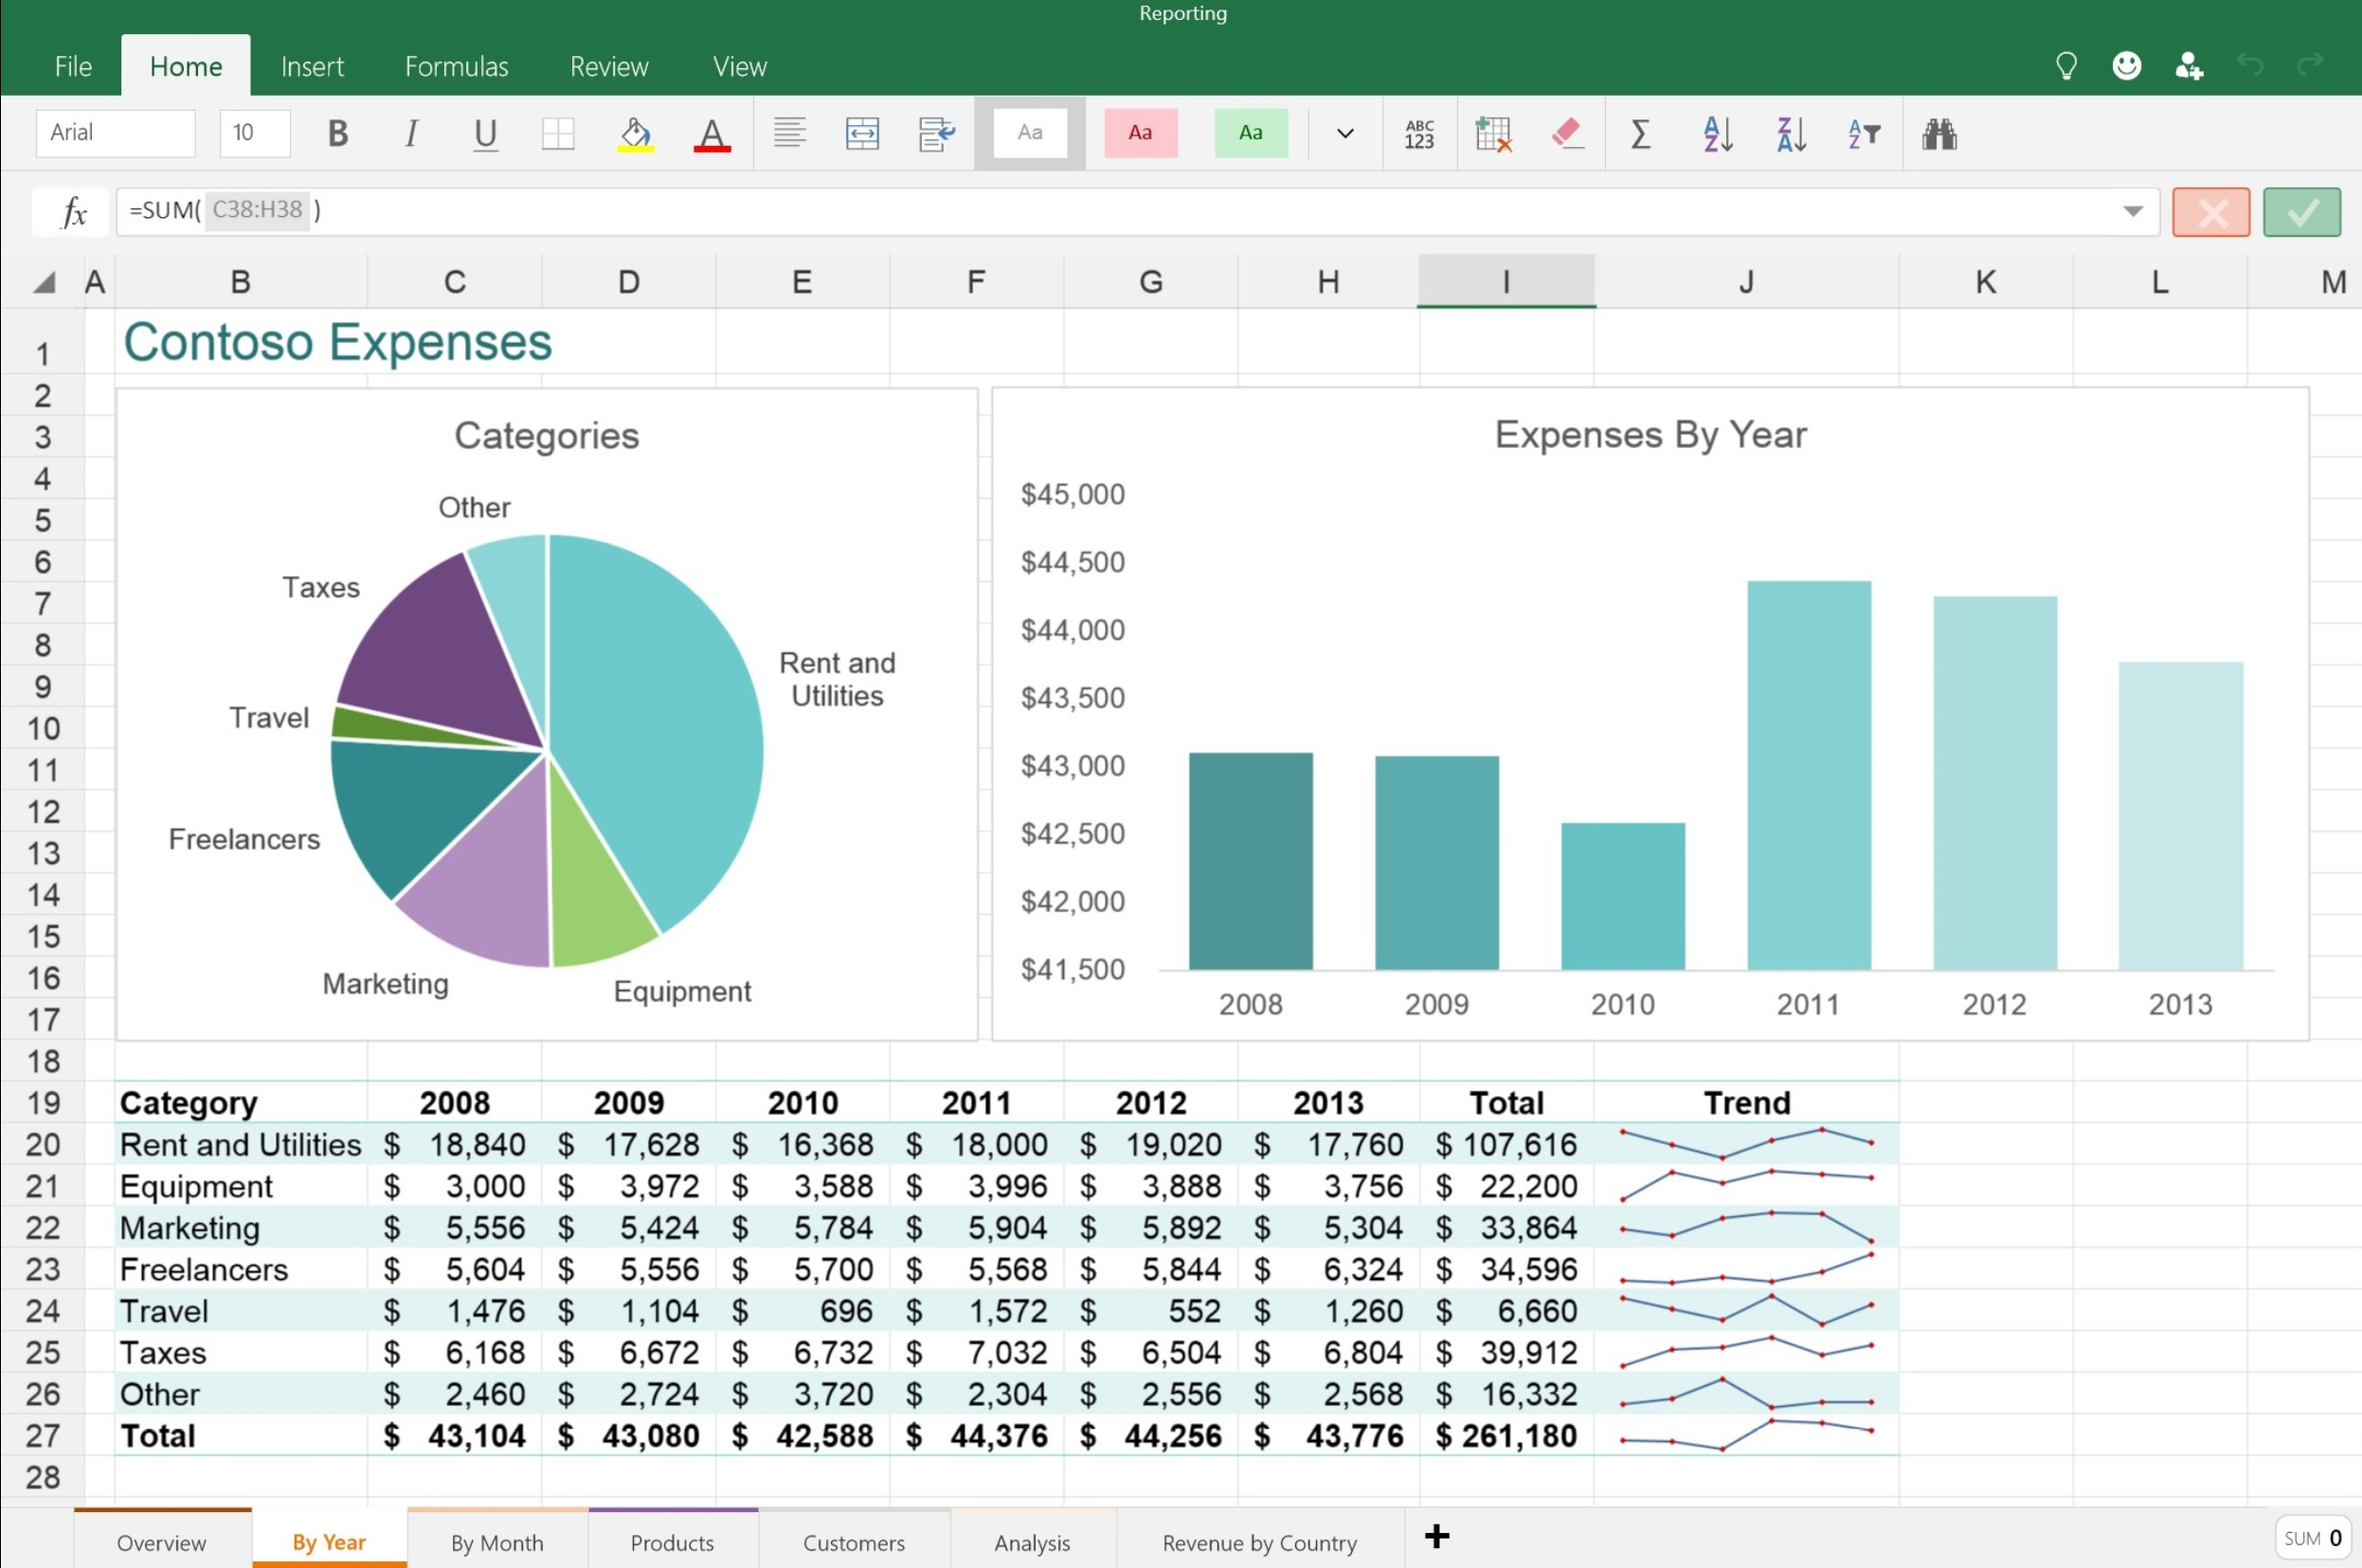 Ediblewildsus  Unique Features Available In The New Word Excel And Powerpoint Apps For  With Interesting Excel Touch App  With Adorable Ms Excel  Notes Pdf Free Download Also Converting Dates In Excel In Addition Sd Formula In Excel And Microsoft Excel  Quiz As Well As Personal Financial Plan Example Excel Additionally Staffing Template Excel From Mspowerusercom With Ediblewildsus  Interesting Features Available In The New Word Excel And Powerpoint Apps For  With Adorable Excel Touch App  And Unique Ms Excel  Notes Pdf Free Download Also Converting Dates In Excel In Addition Sd Formula In Excel From Mspowerusercom